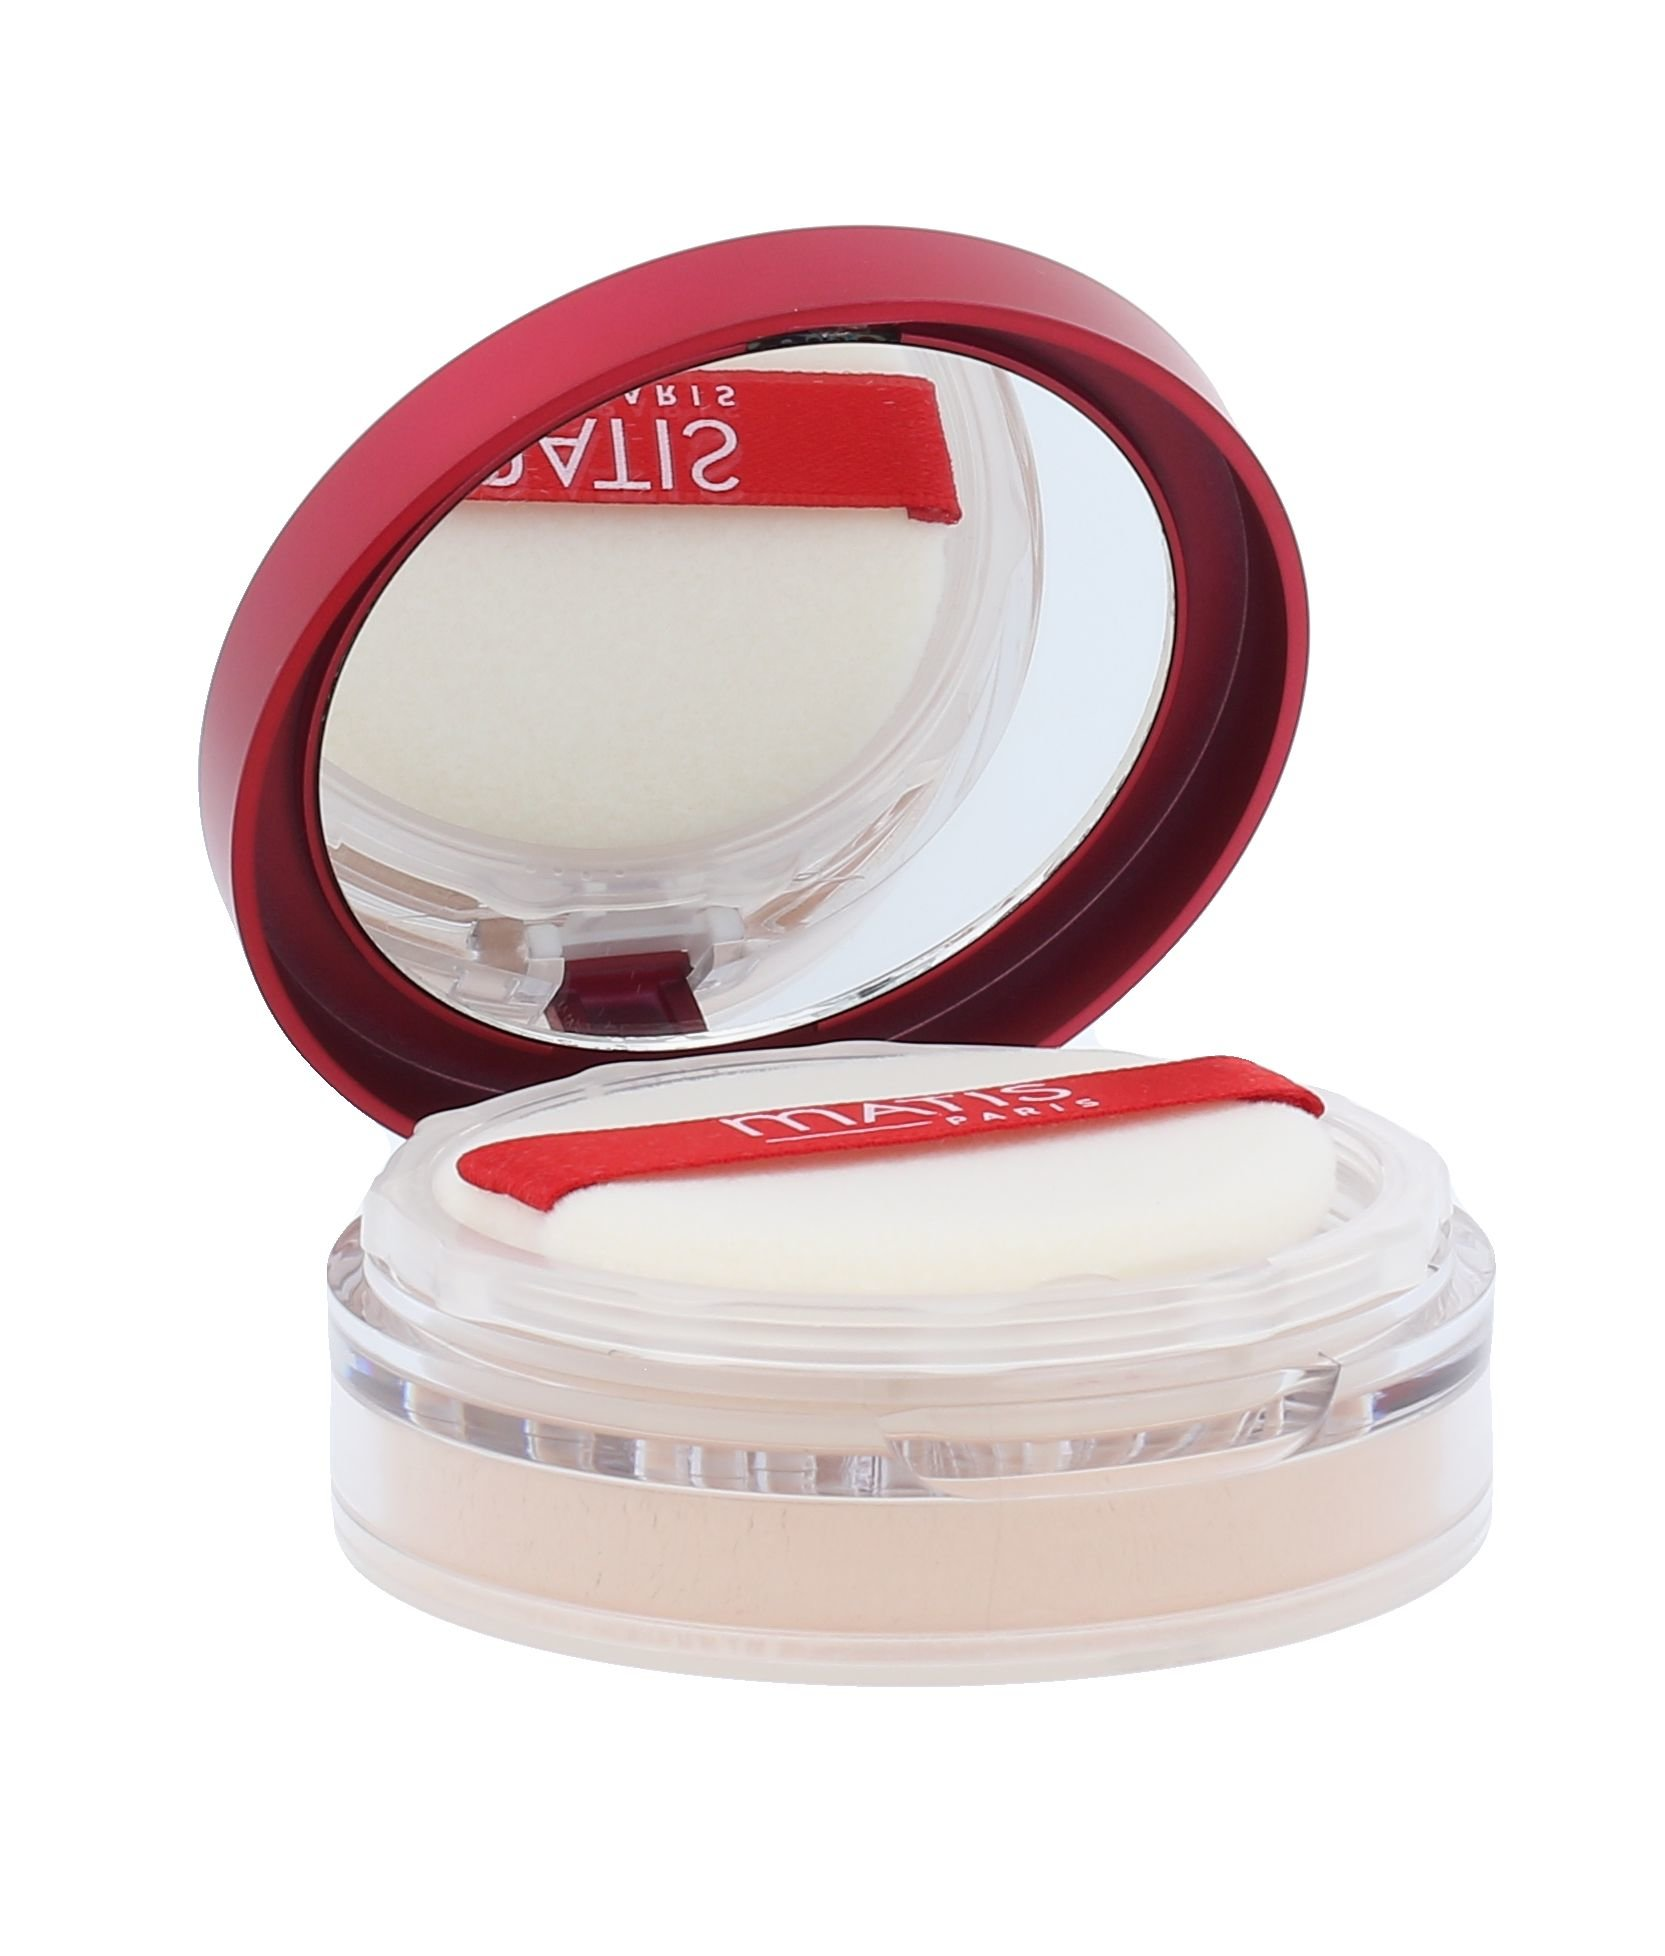 Matis Réponse Teint Mineral Pro Cosmetic 5,2ml Translucent Loose Powder